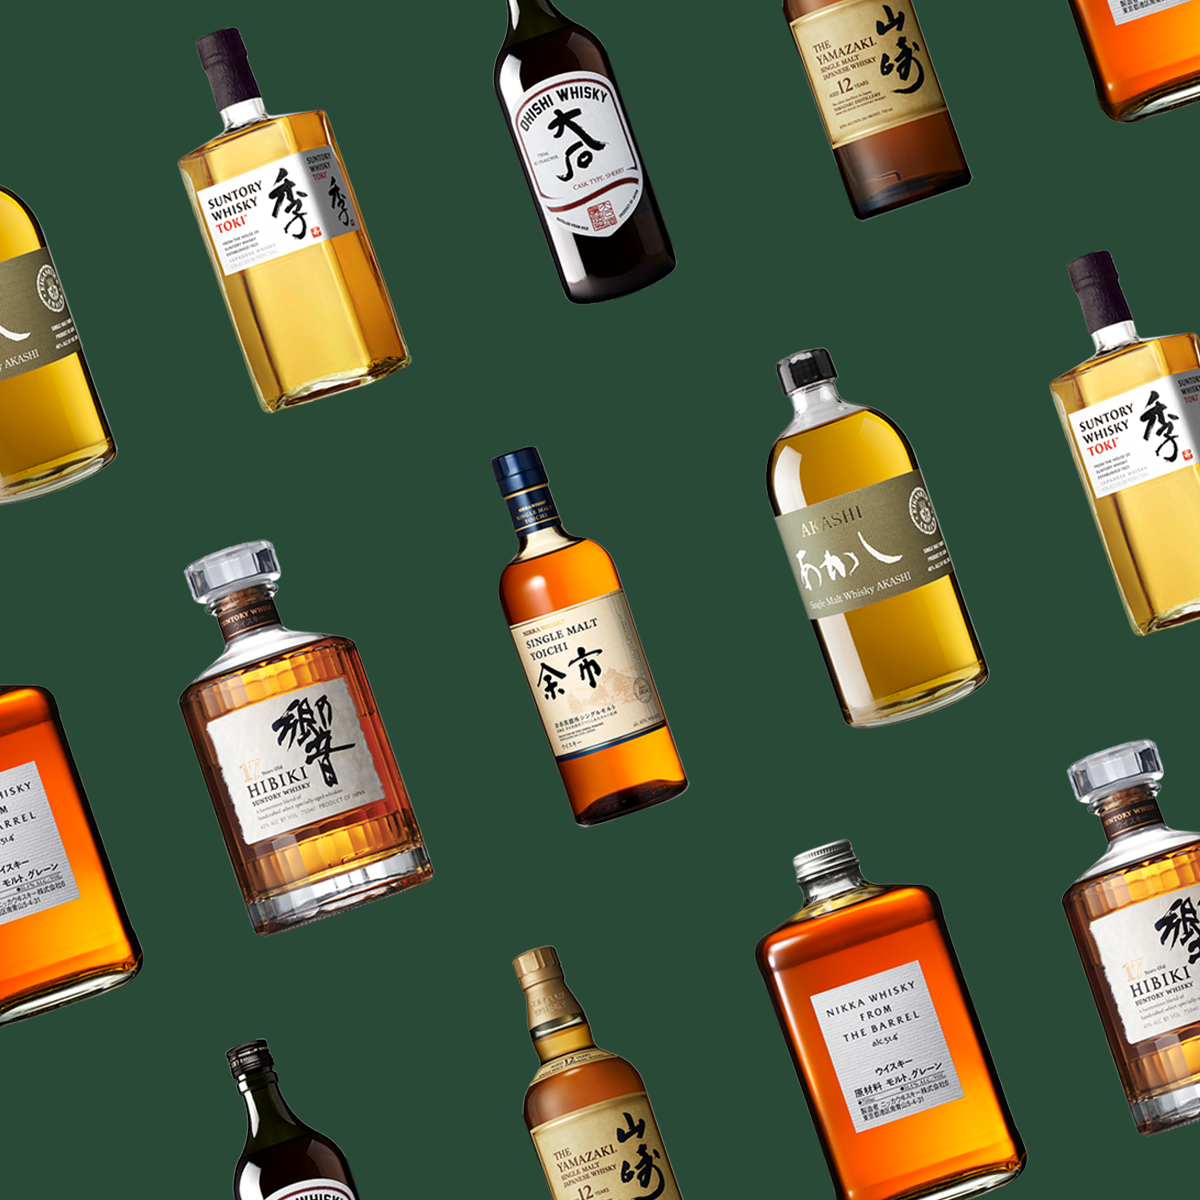 11 Best Japanese Whisky Bottles to Drink Right Now